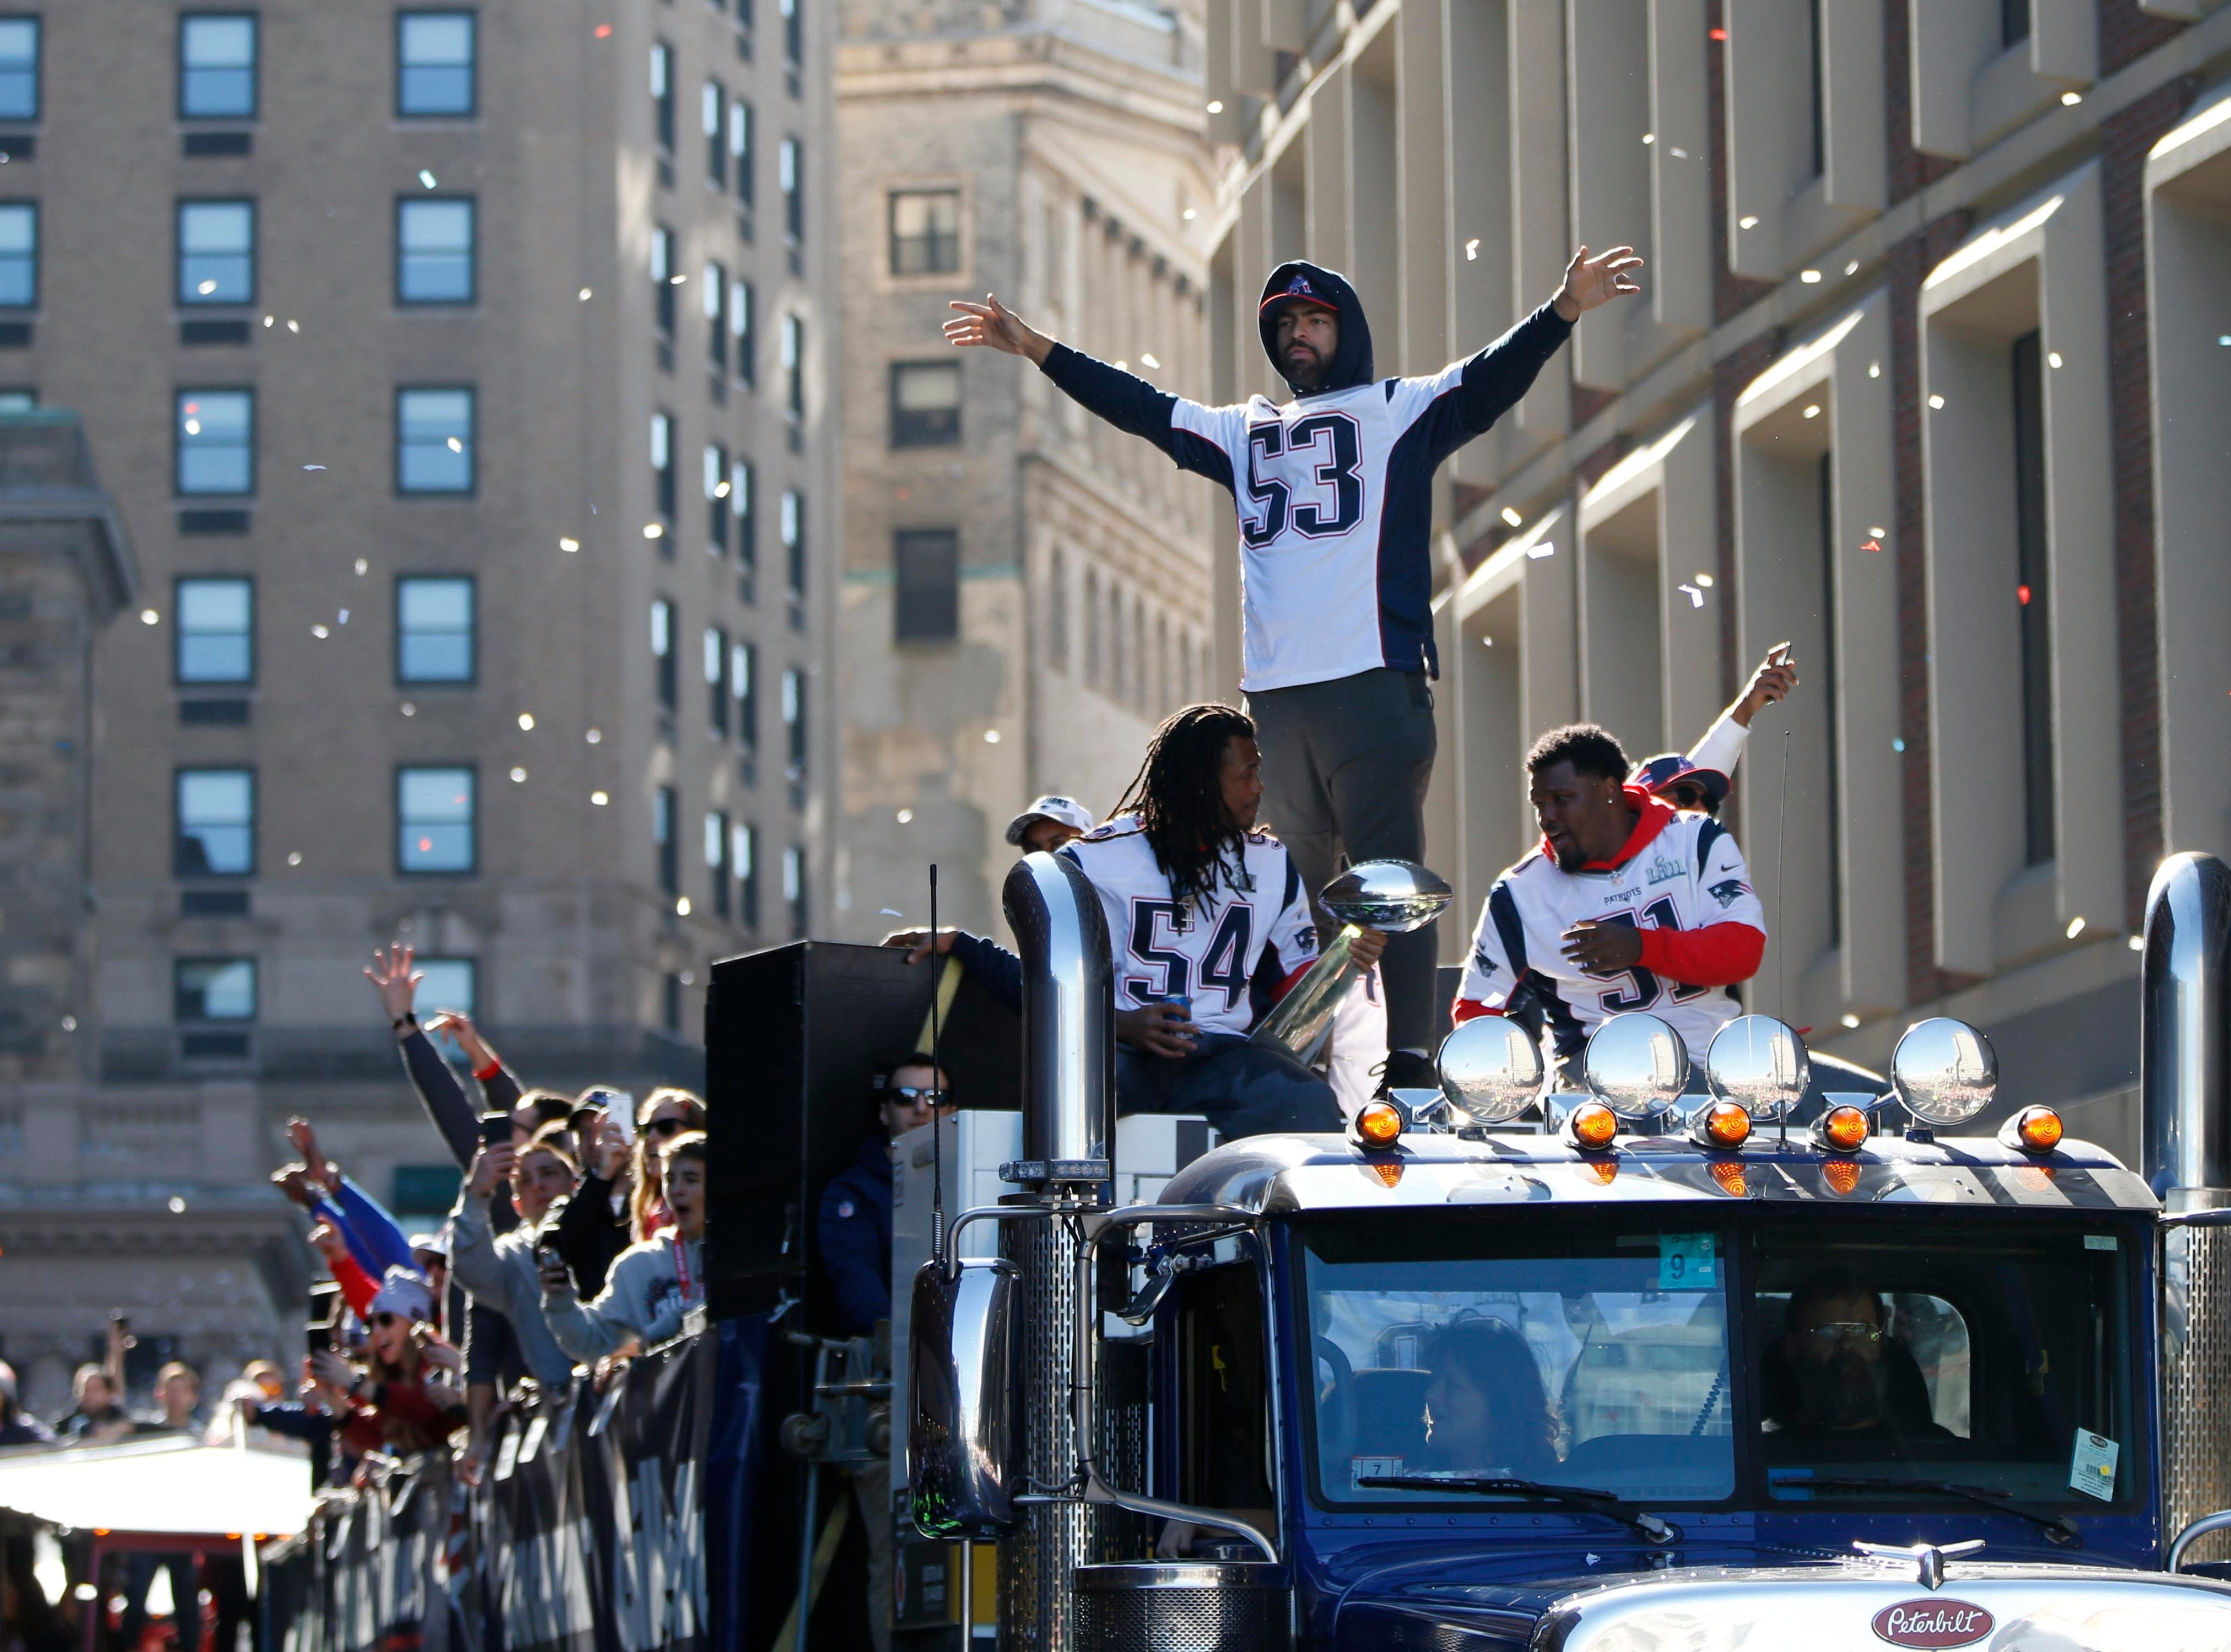 New England Patriots middle linebacker Kyle Van Noy (53) celebrates during the Super Bowl LIII championship parade through downtown Boston.